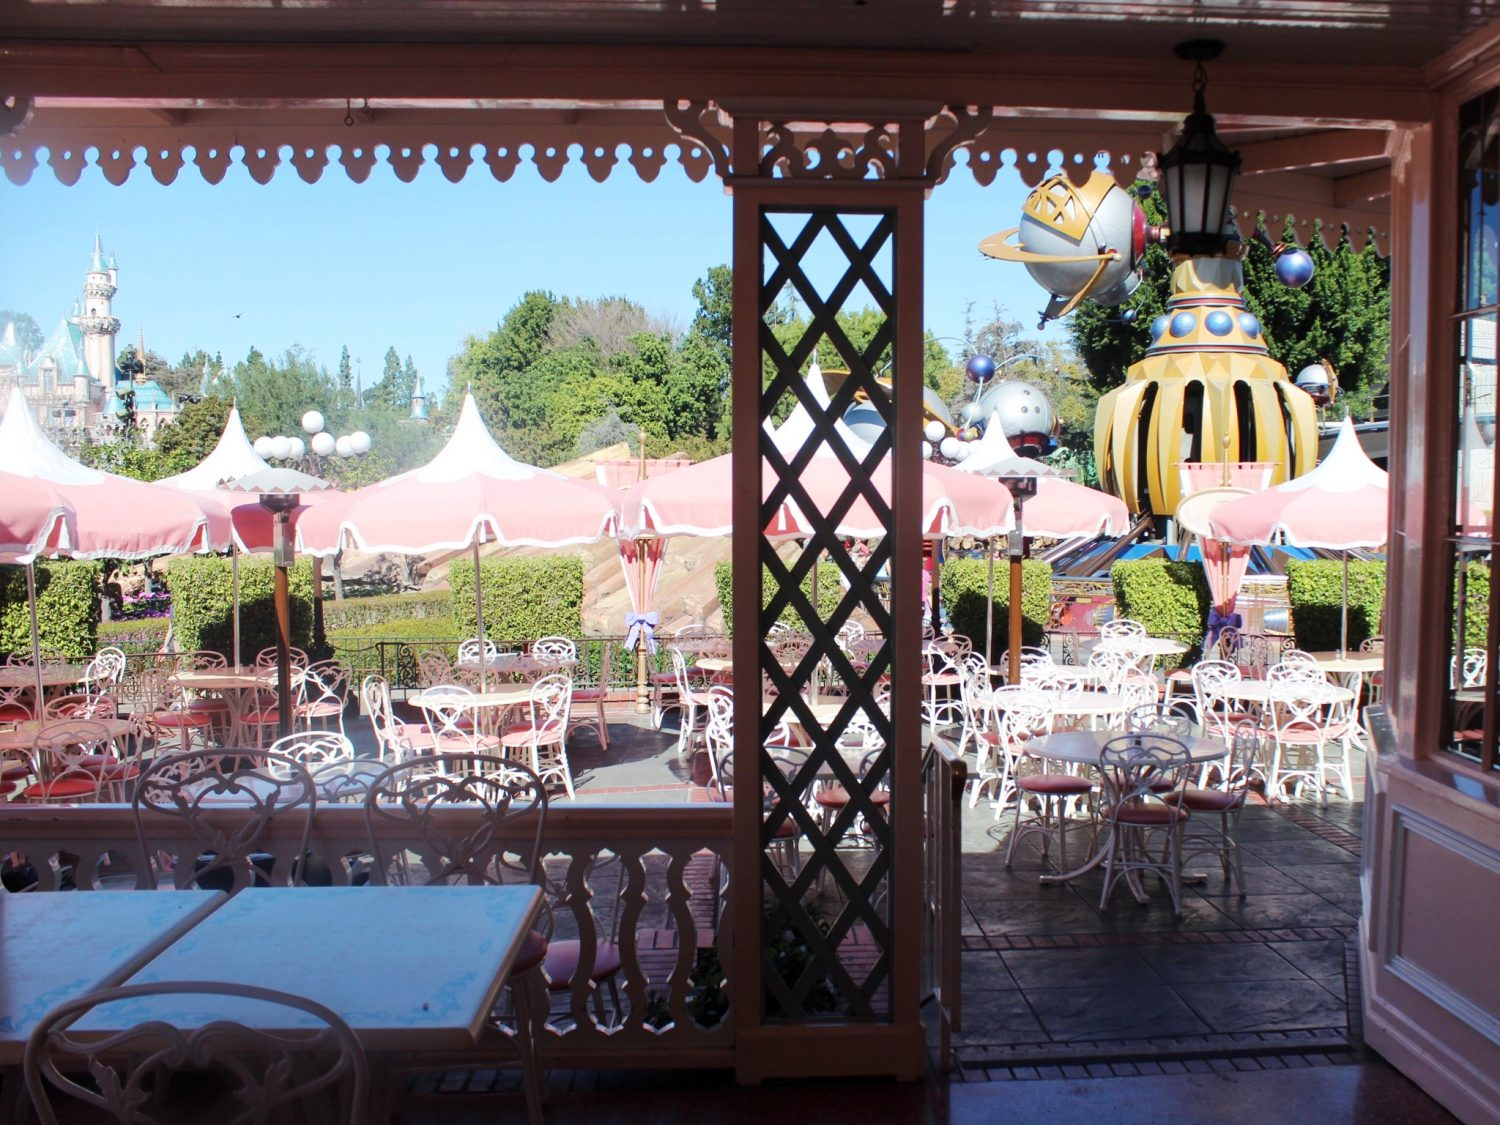 Disneyland Restaurant Review: Plaza Inn